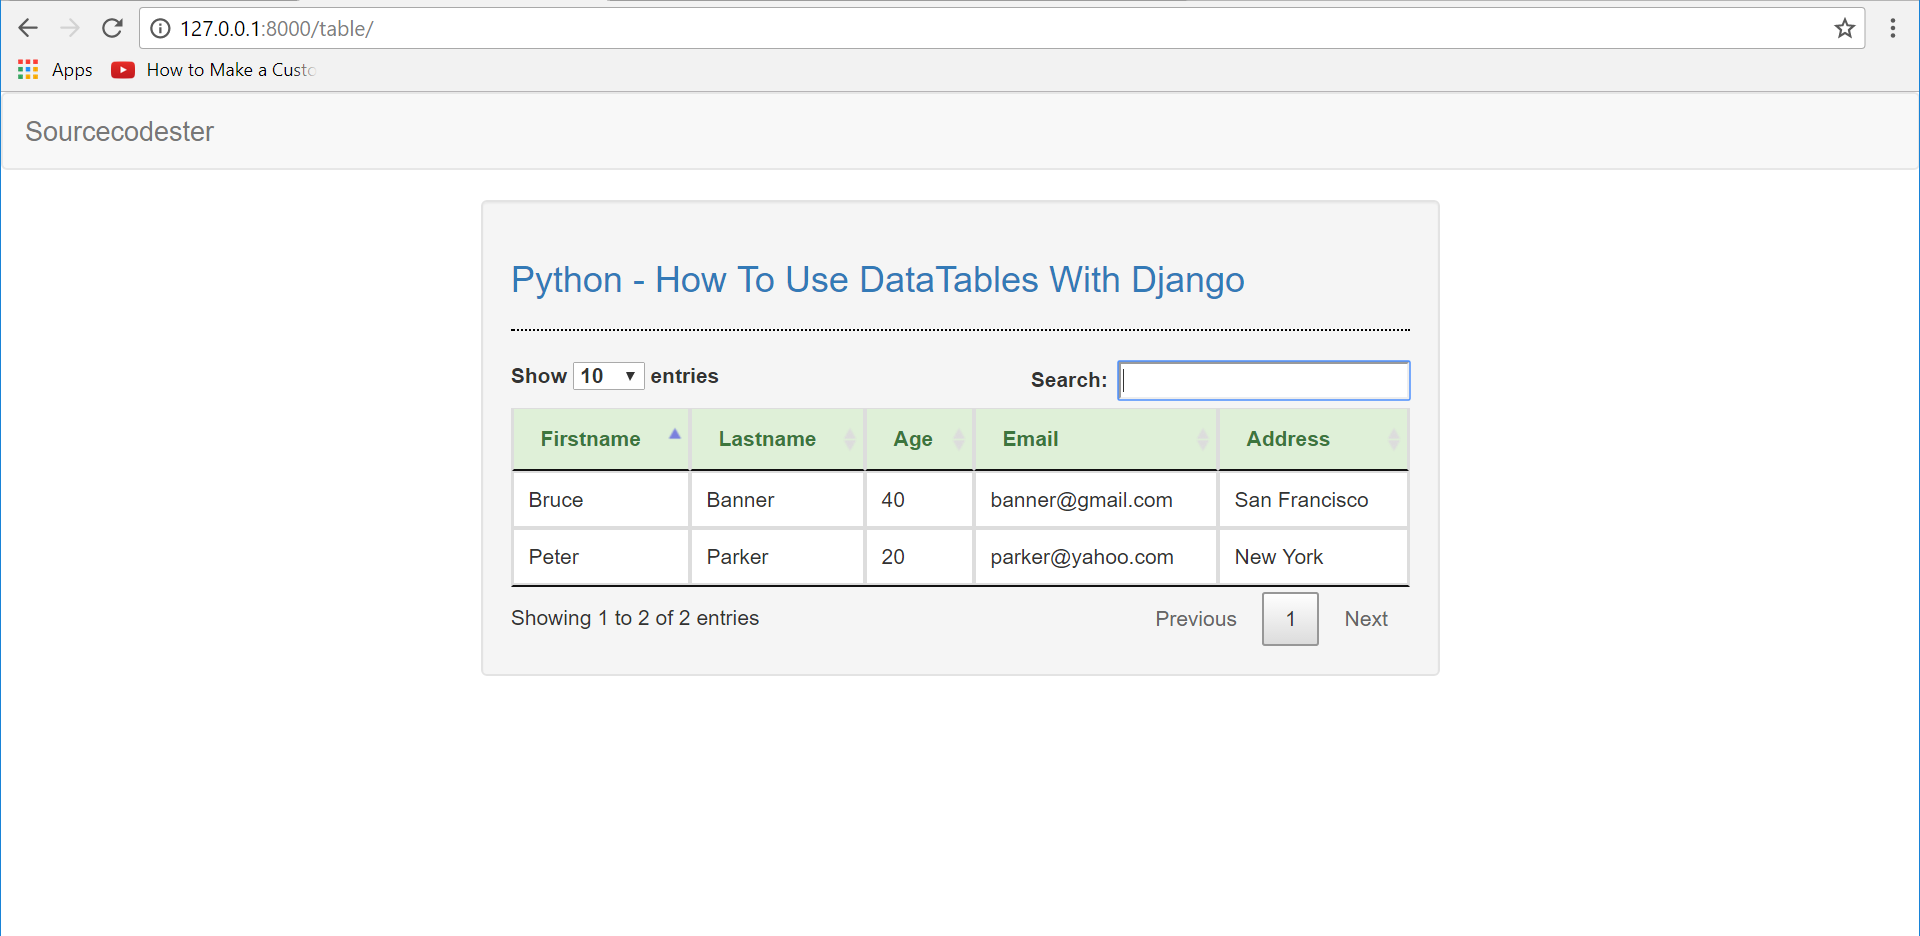 Python - How To Use DataTables With Django | Free Source